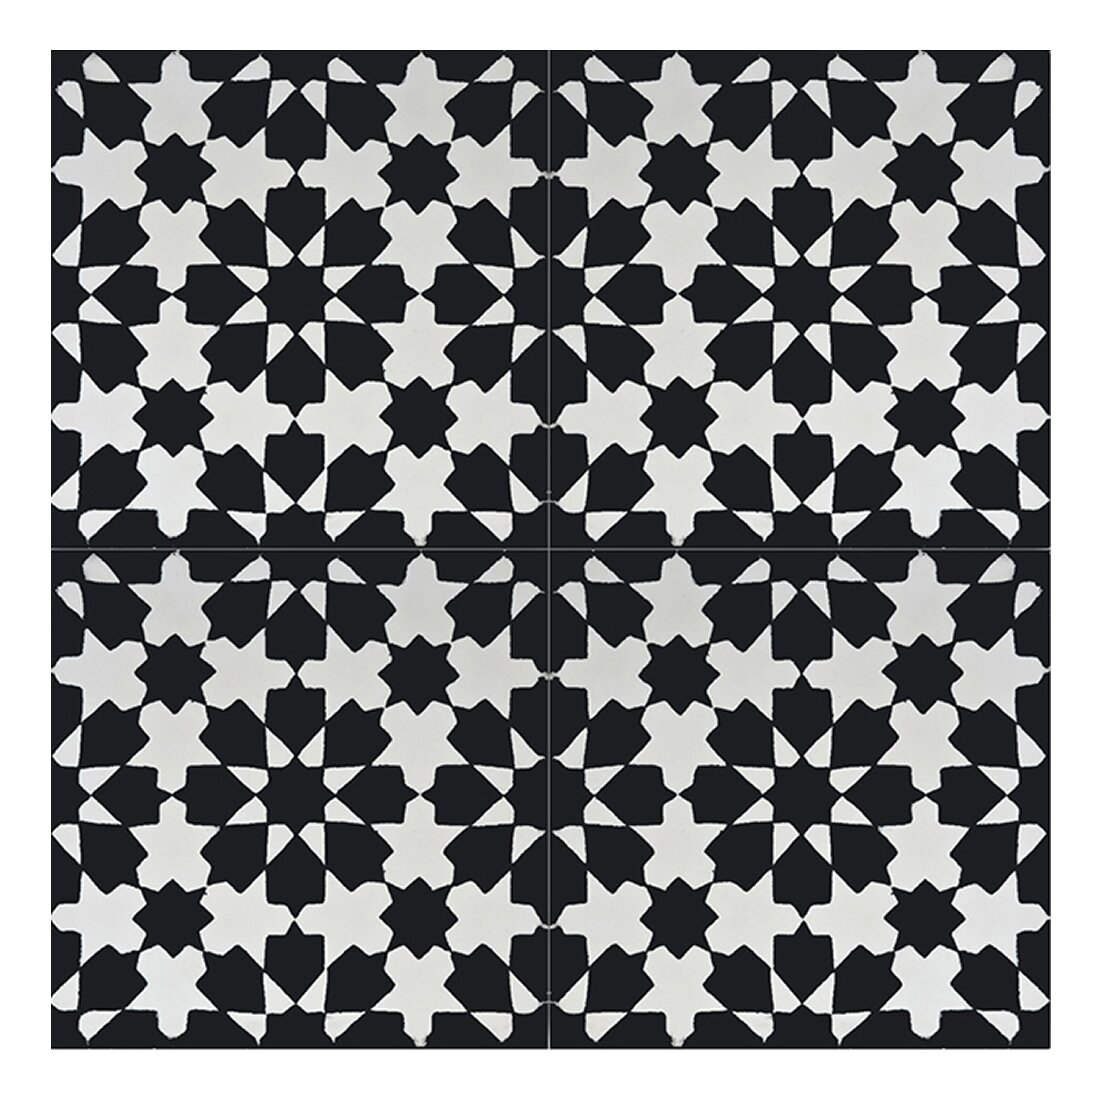 Moroccan mosaic tile house ahfir 8 x 8 cement tile in for Tiles black and white